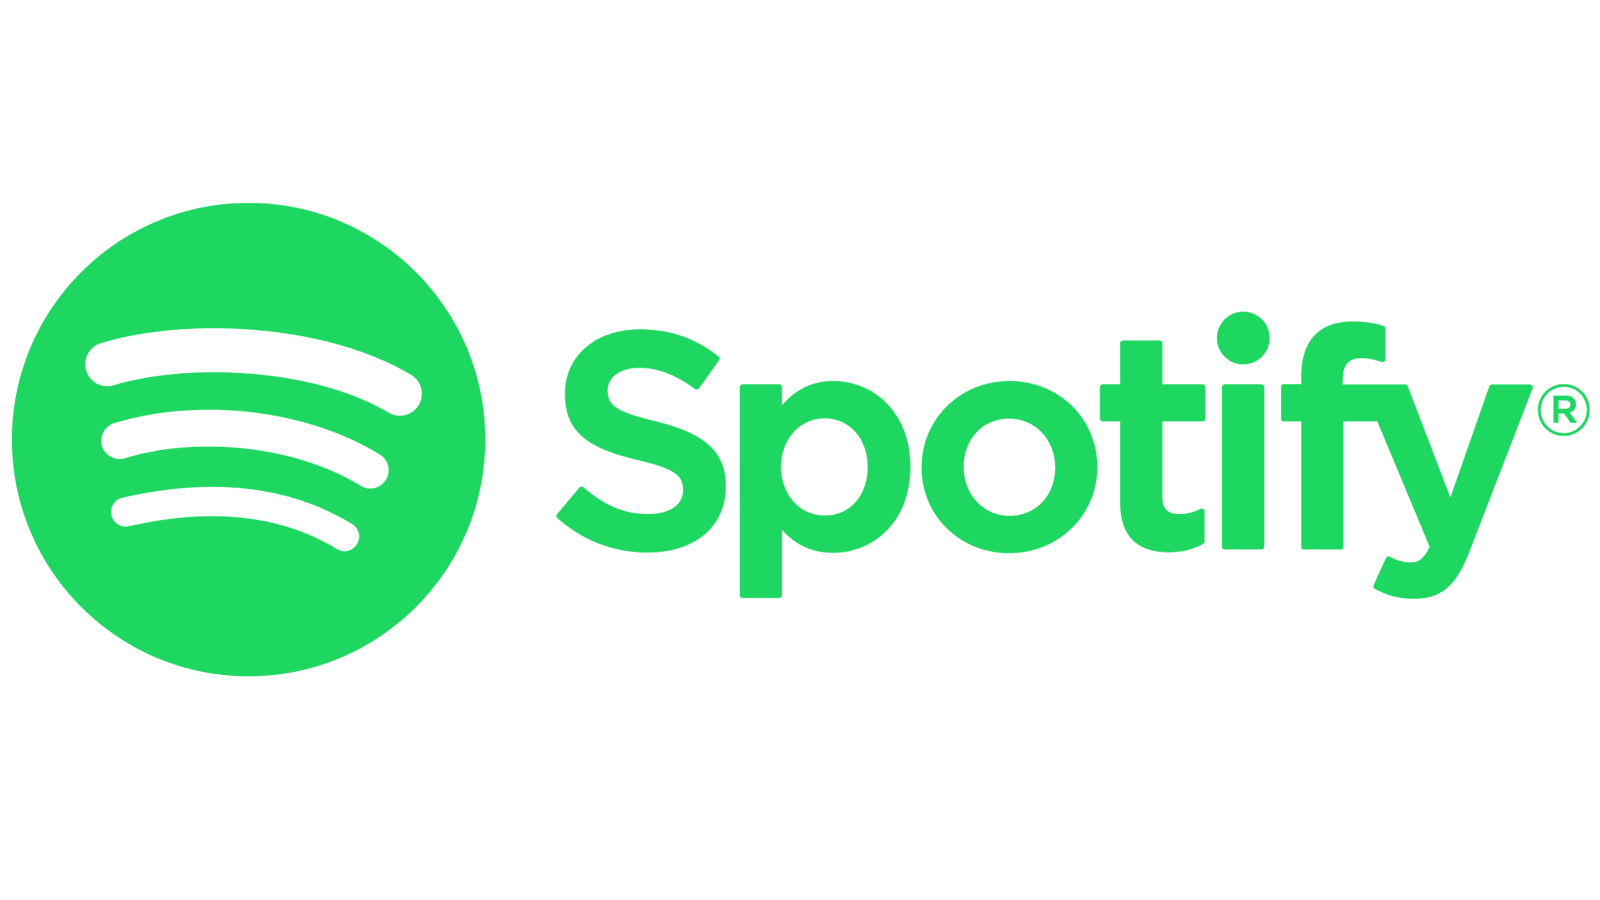 Spotify Cracks Down on Family Plan Misuse By Periodically Vetting Where You Live